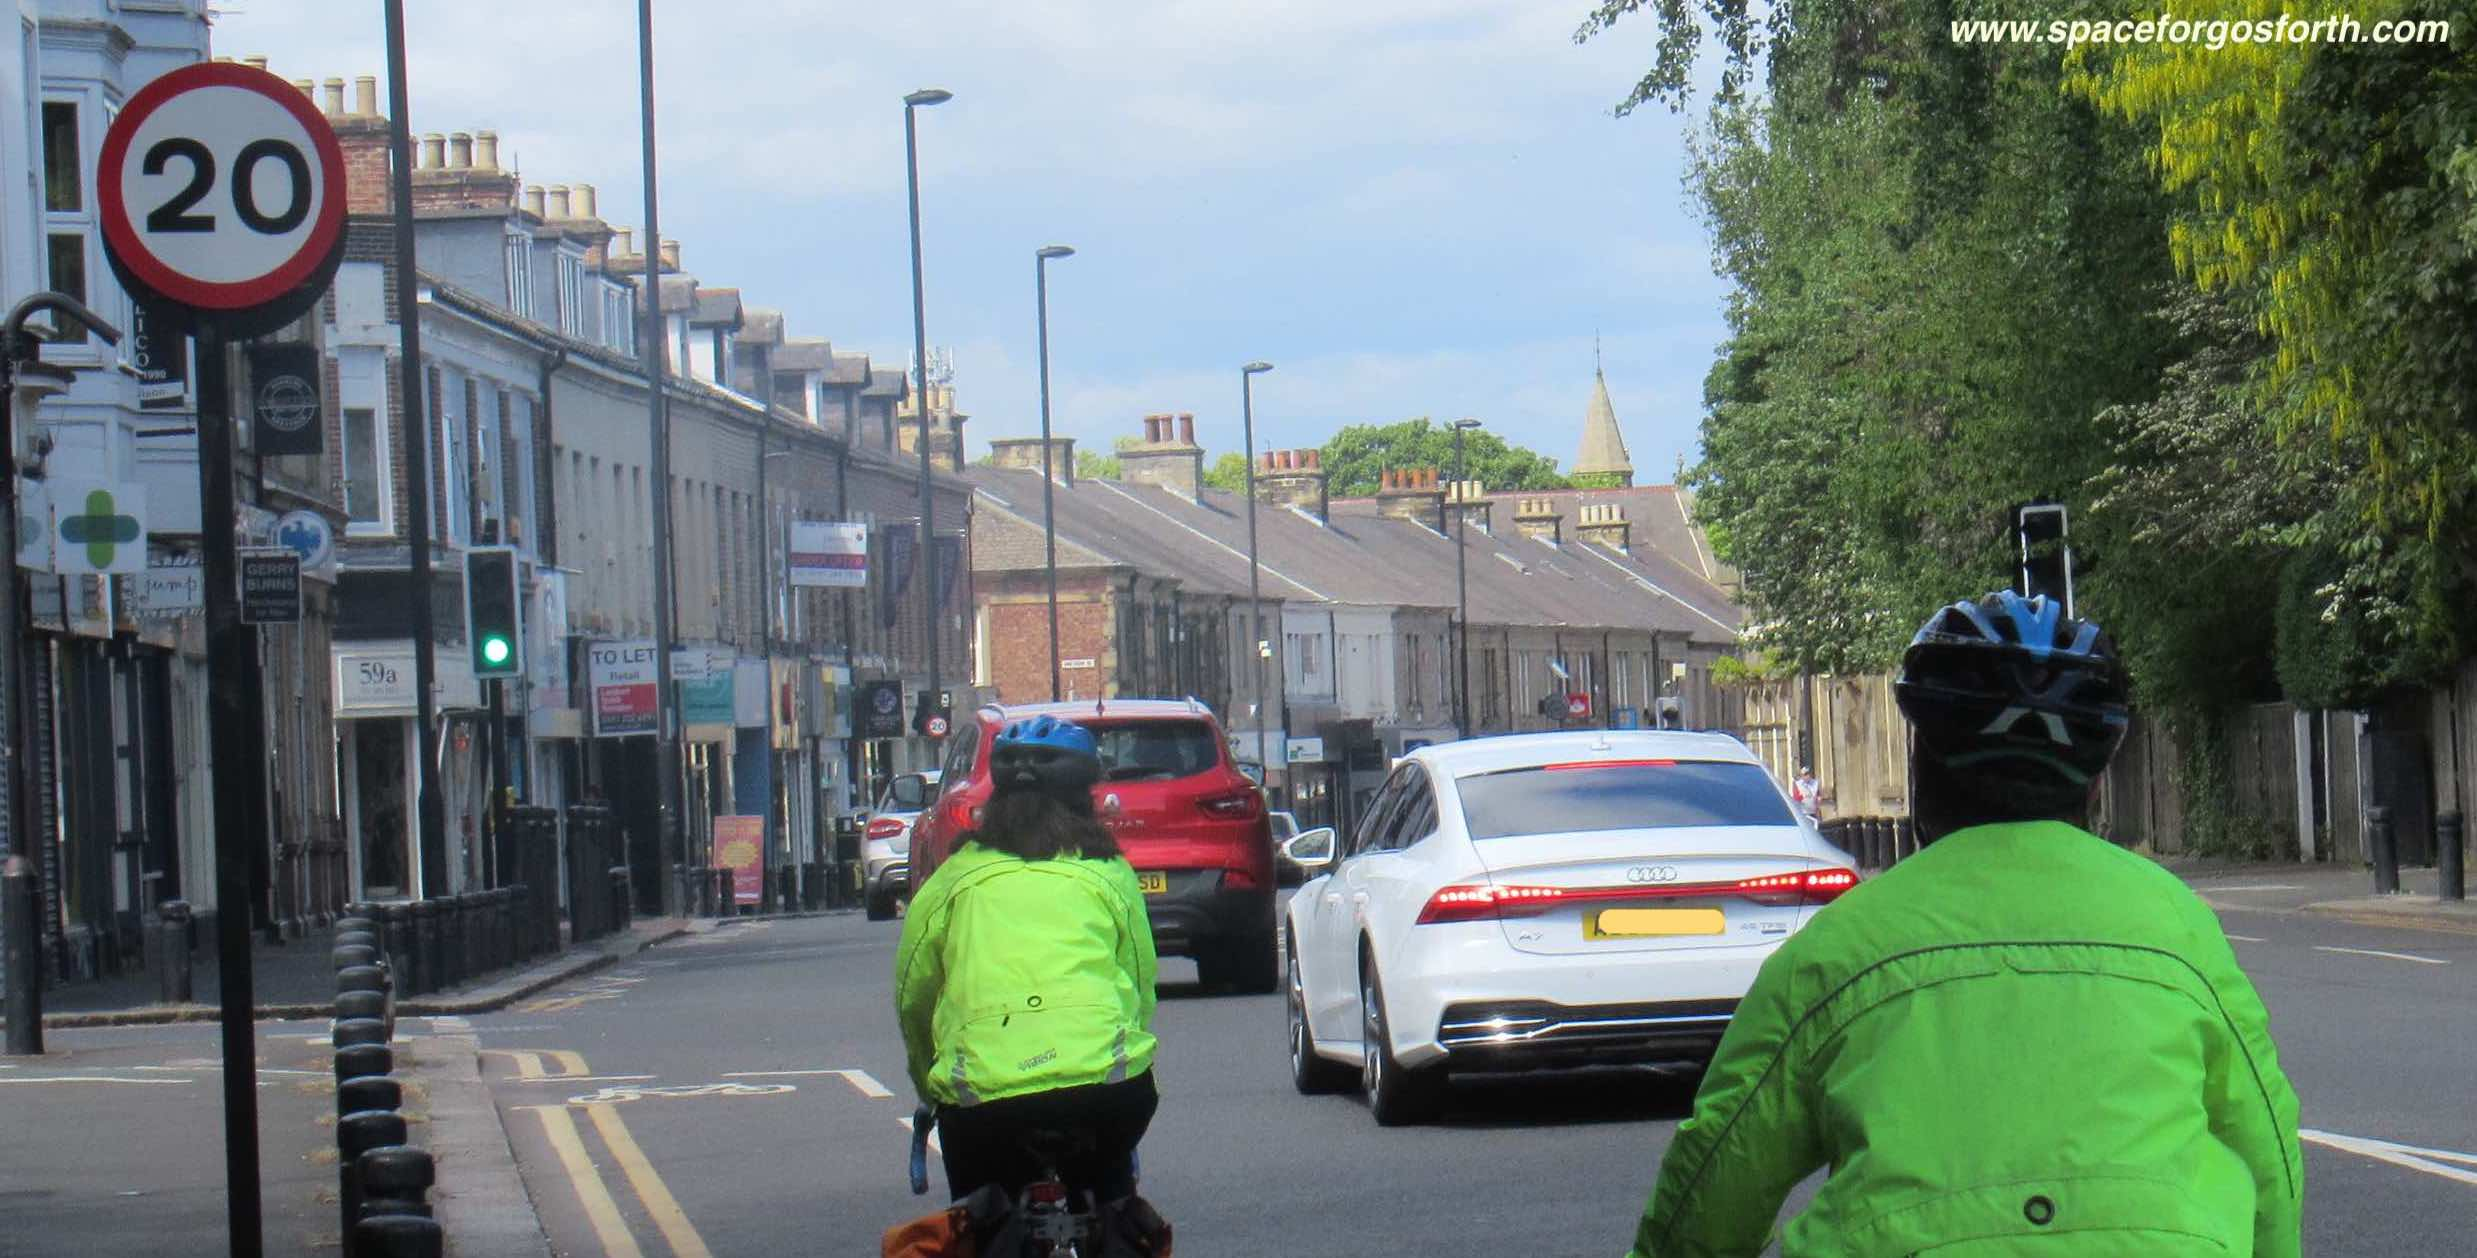 Picture of Gosforth High Street with 20mph sign